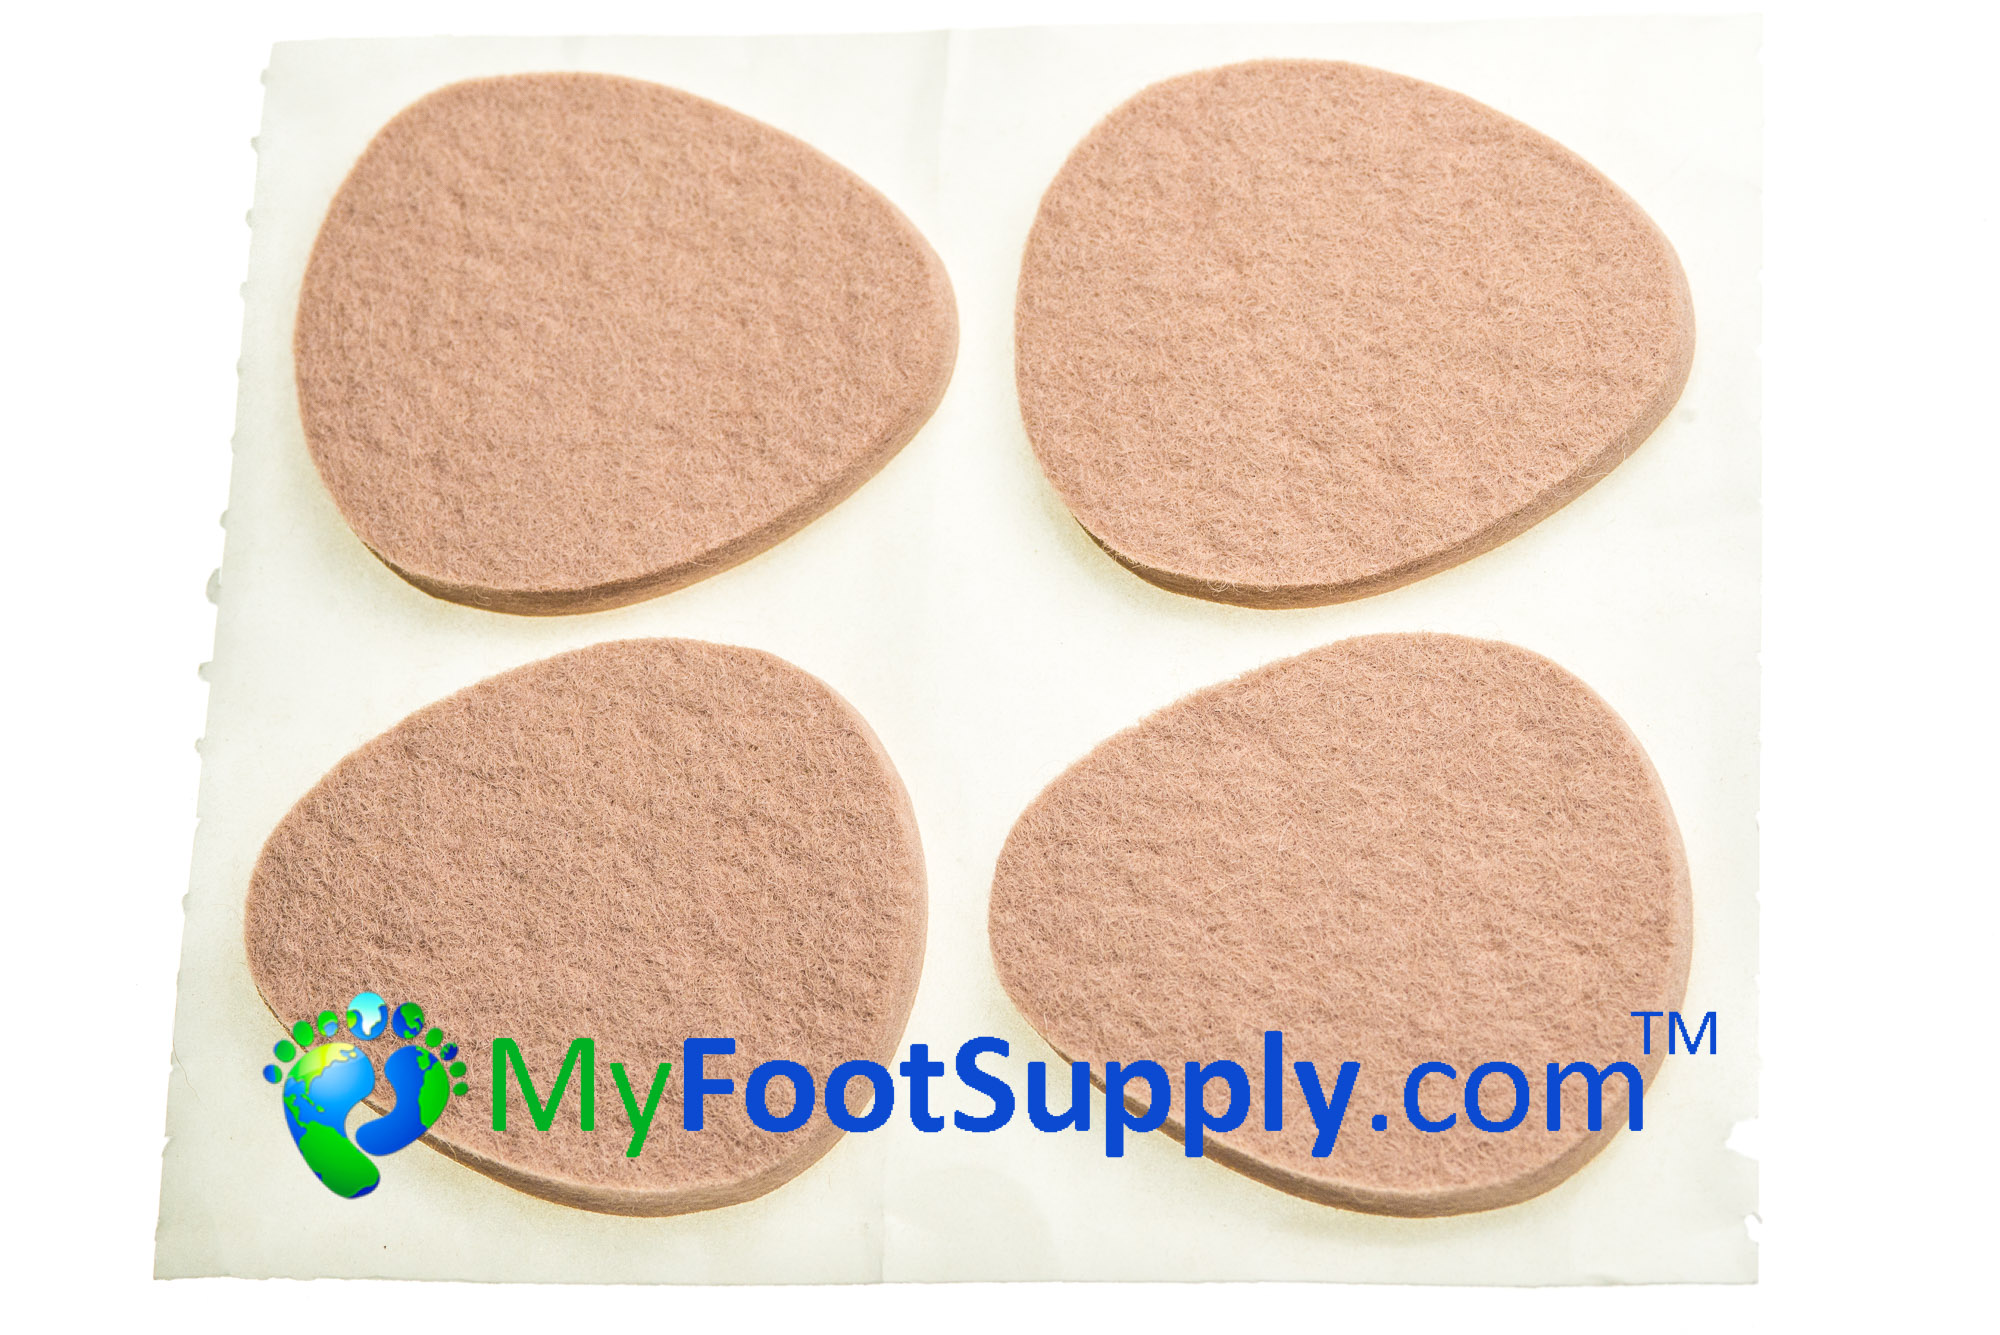 Metatarsal Pads, Neuroma Pads, Met Pads, Foot Pads, Fat Pad Atrophy, Metatarsalgia, Ball of the foot Pain, Mortons Neuroma